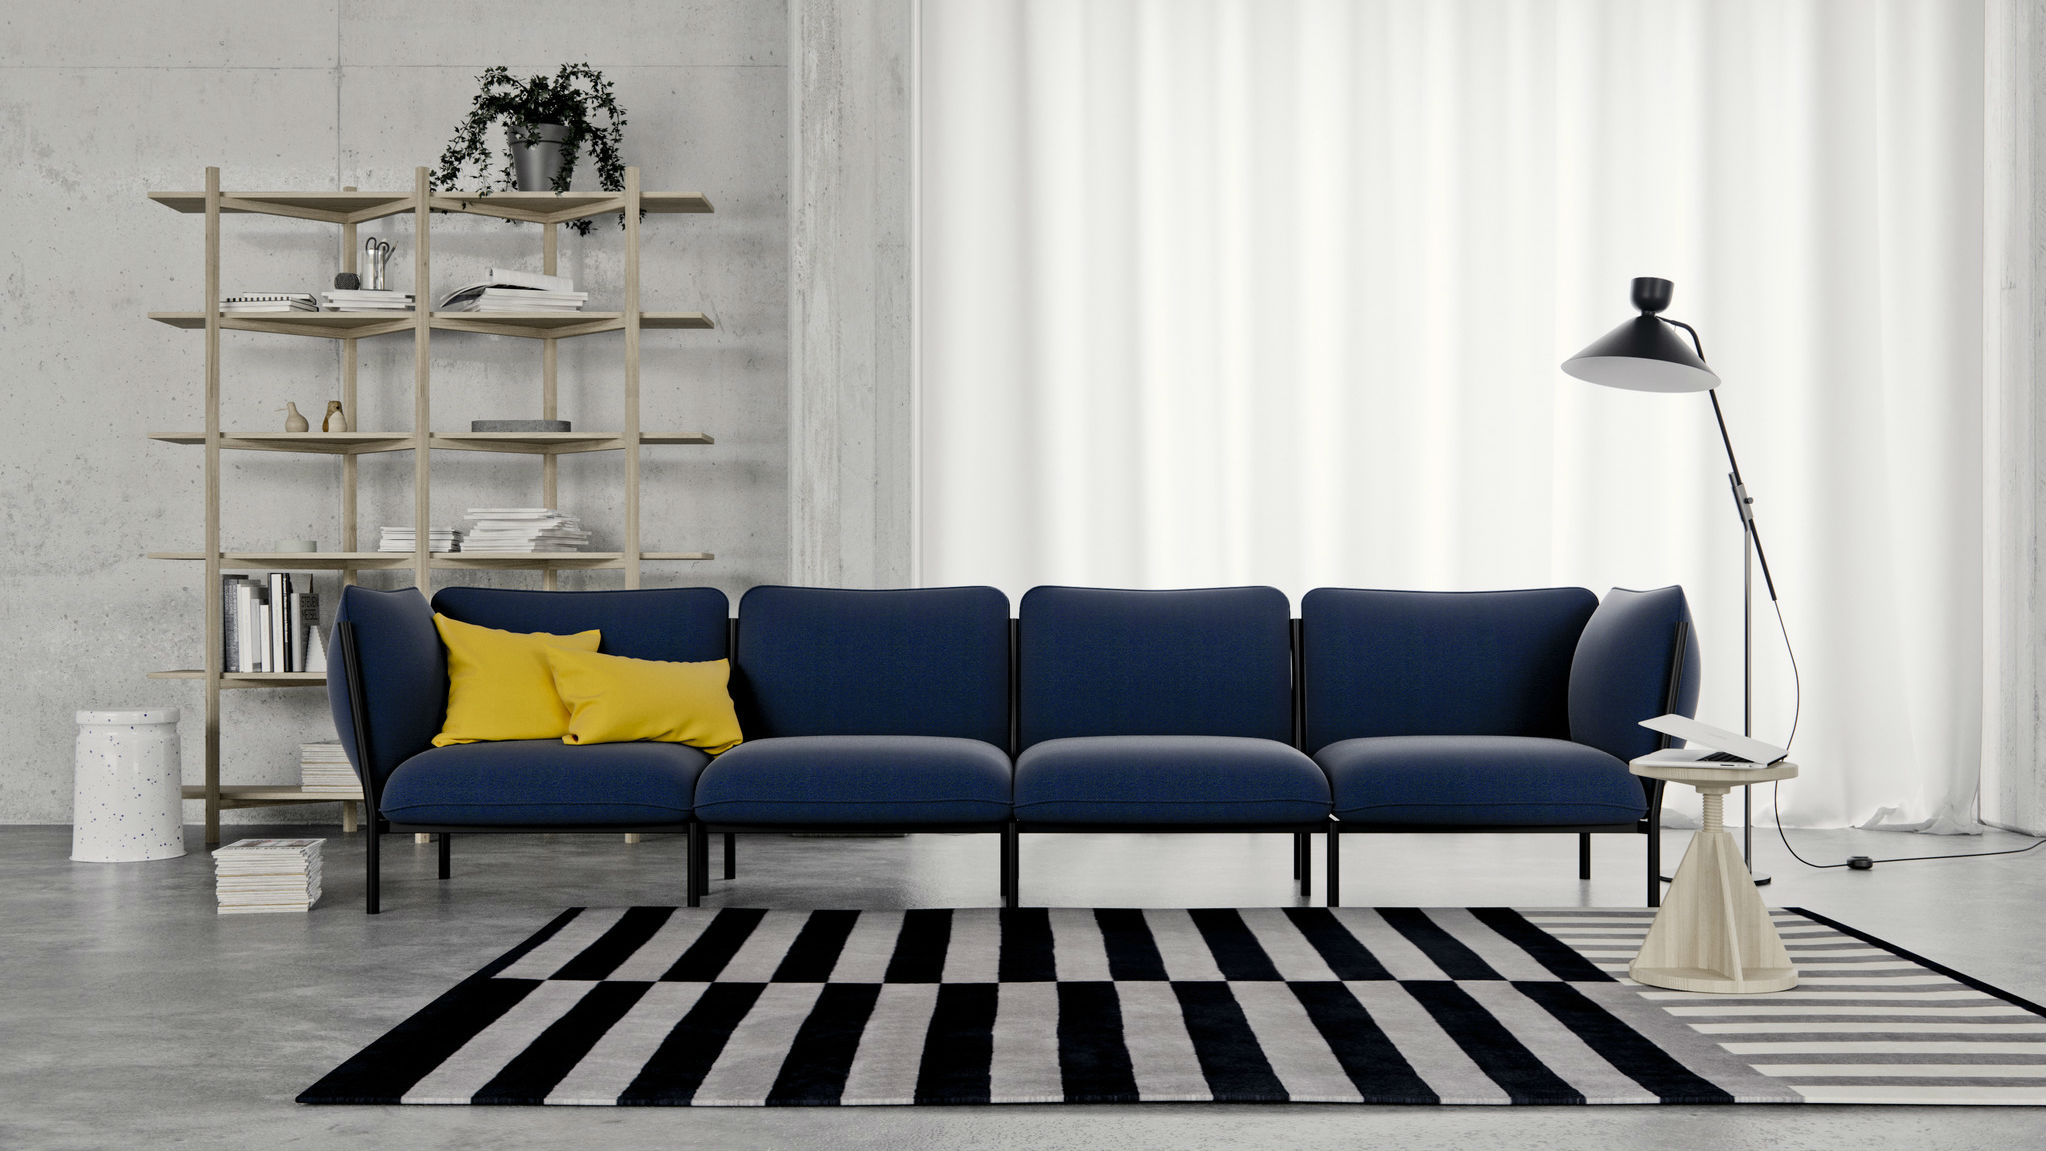 Kumo Modular Sofa, by Anderssen & Voll for Hem